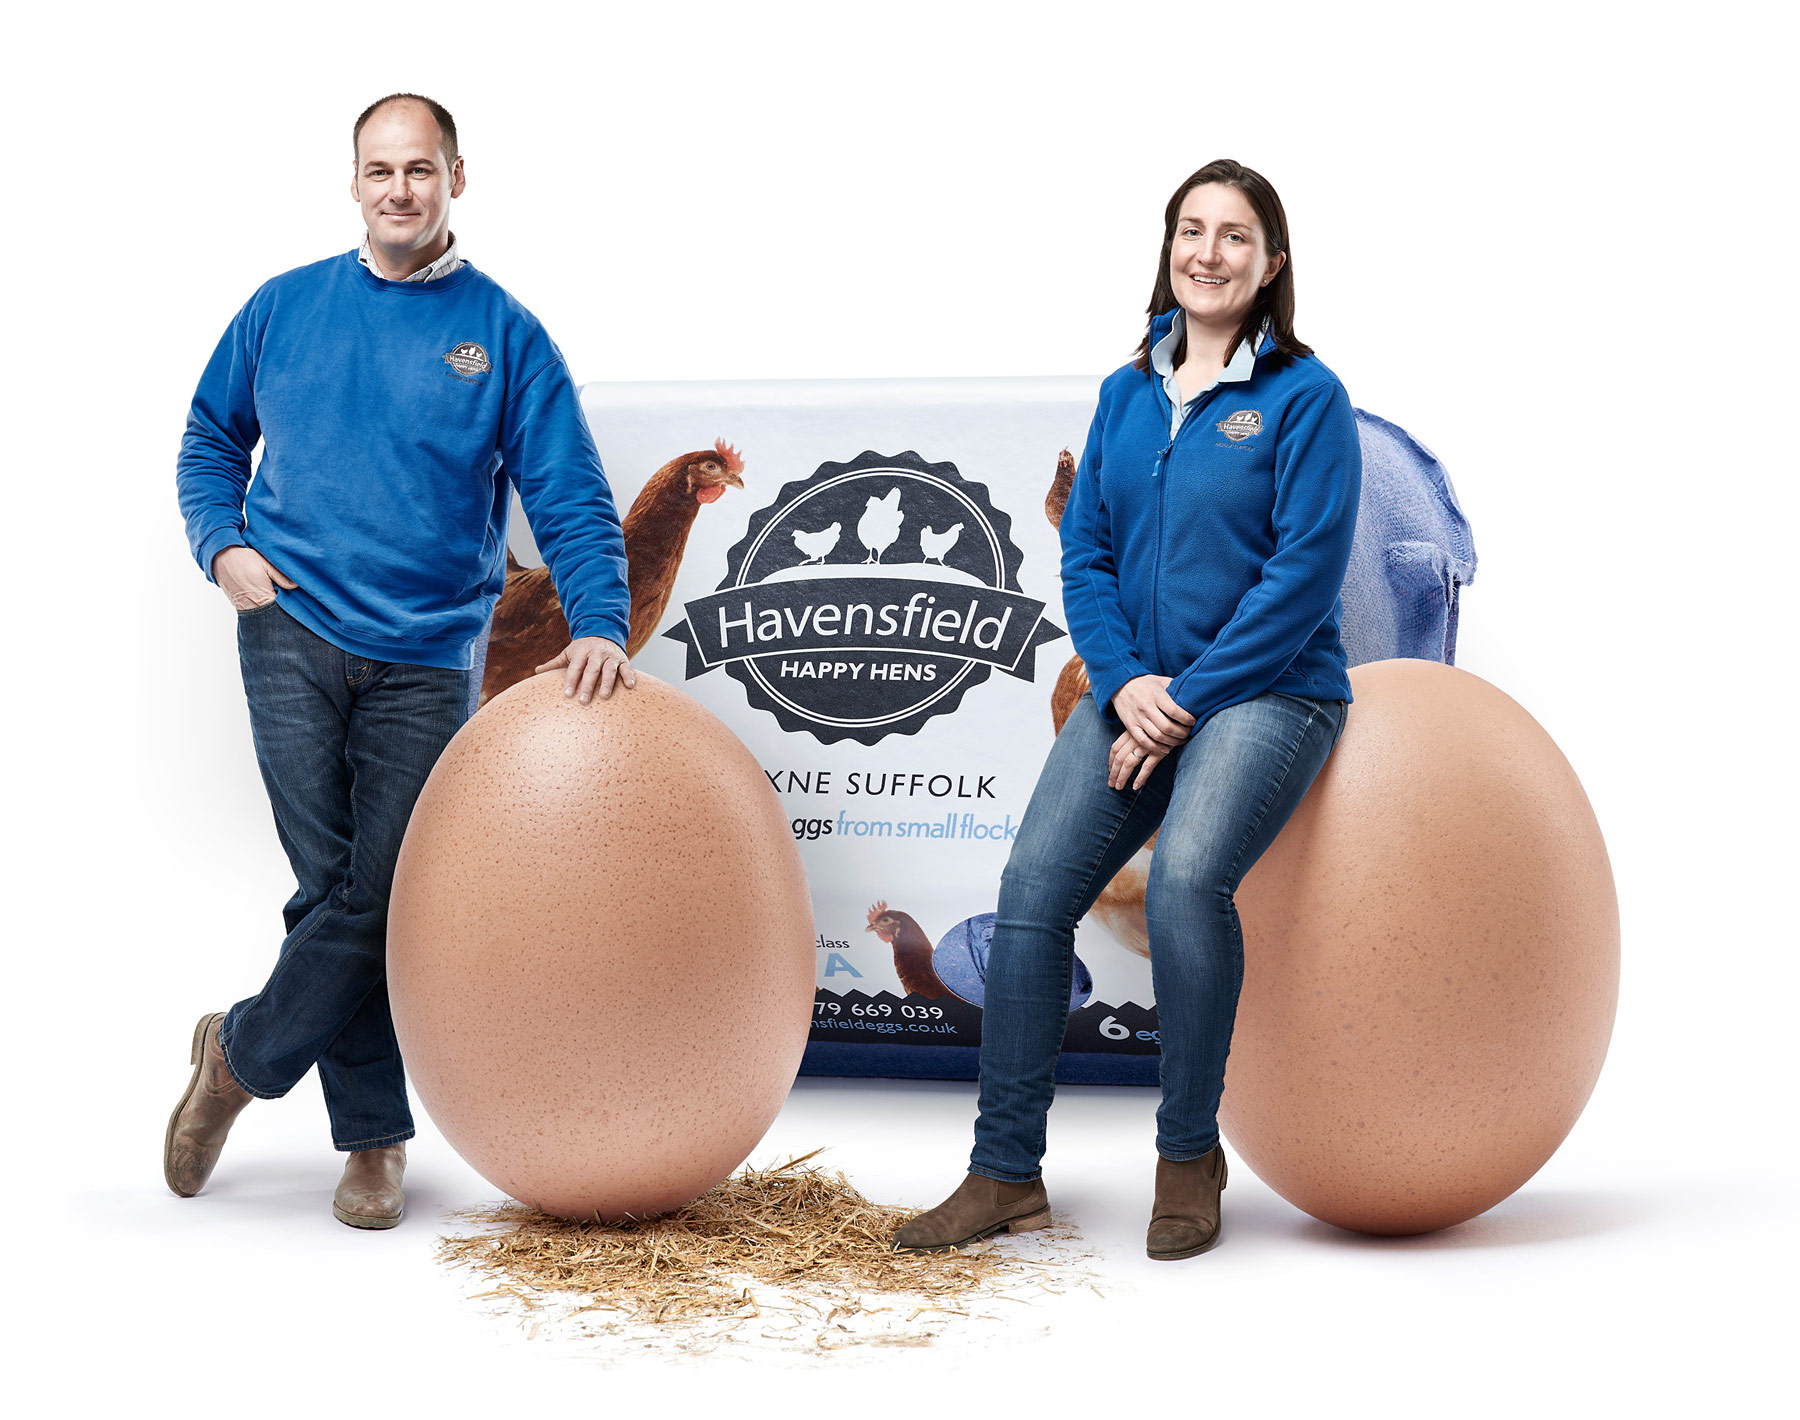 Havensfield Eggs farmers